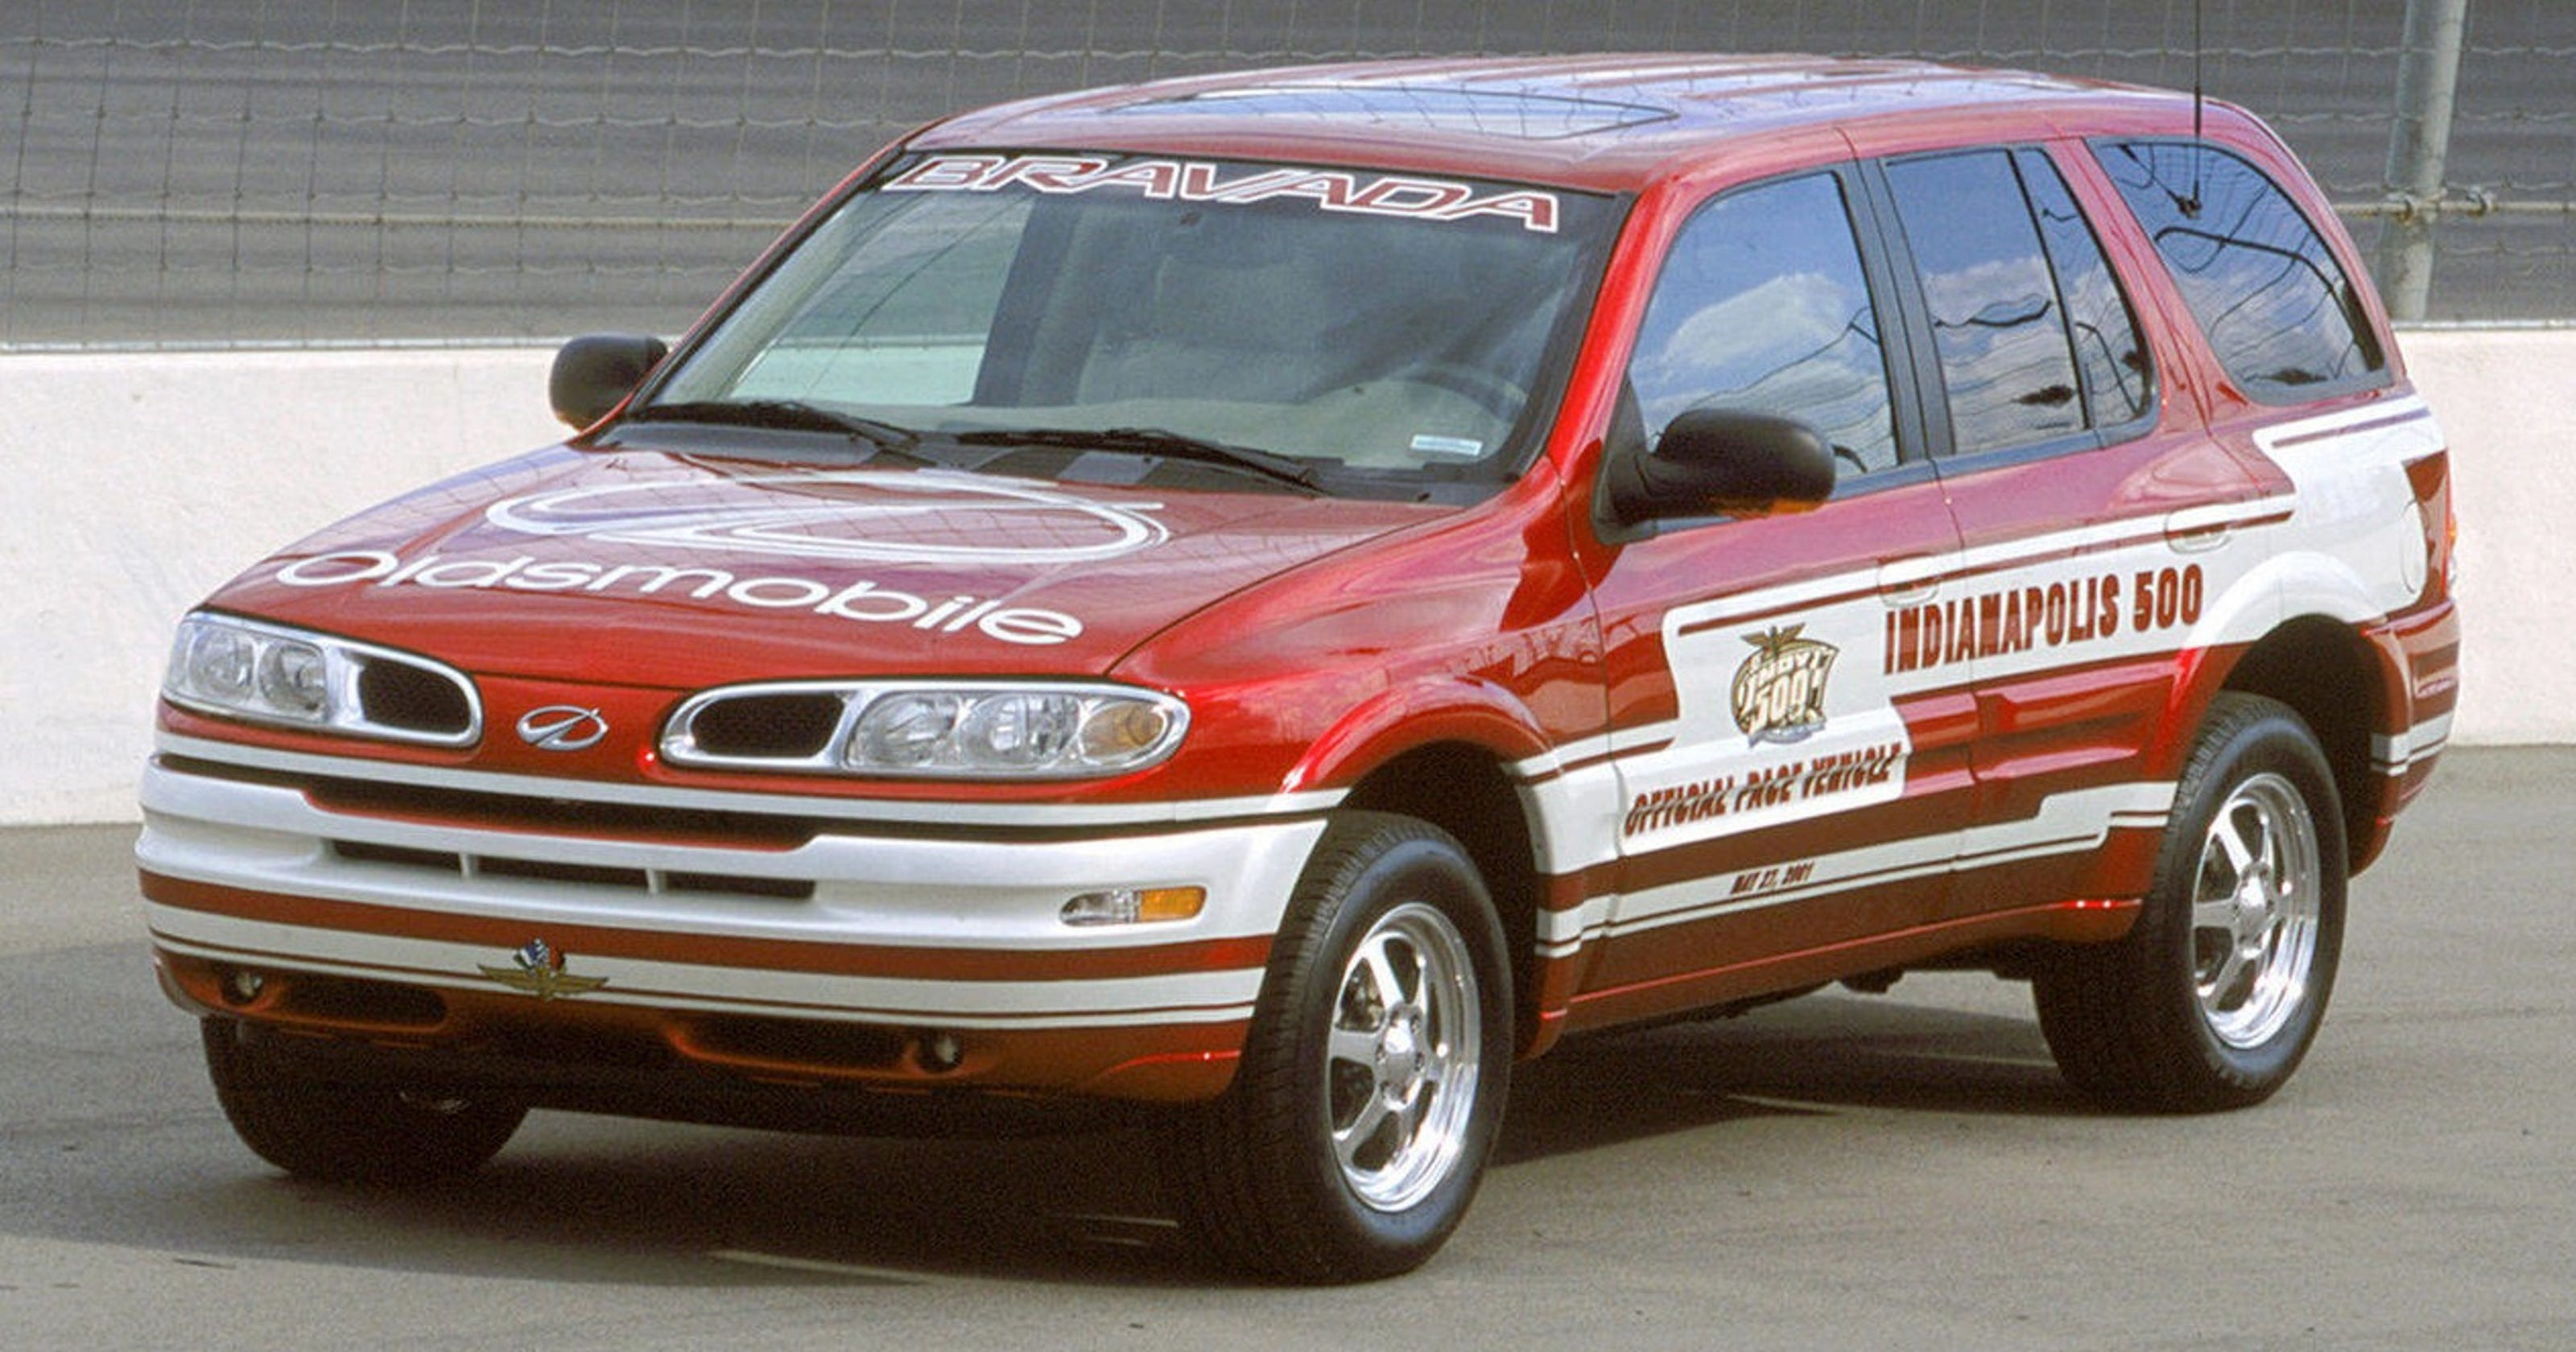 The 10 worst Indy 500 pace cars of all time